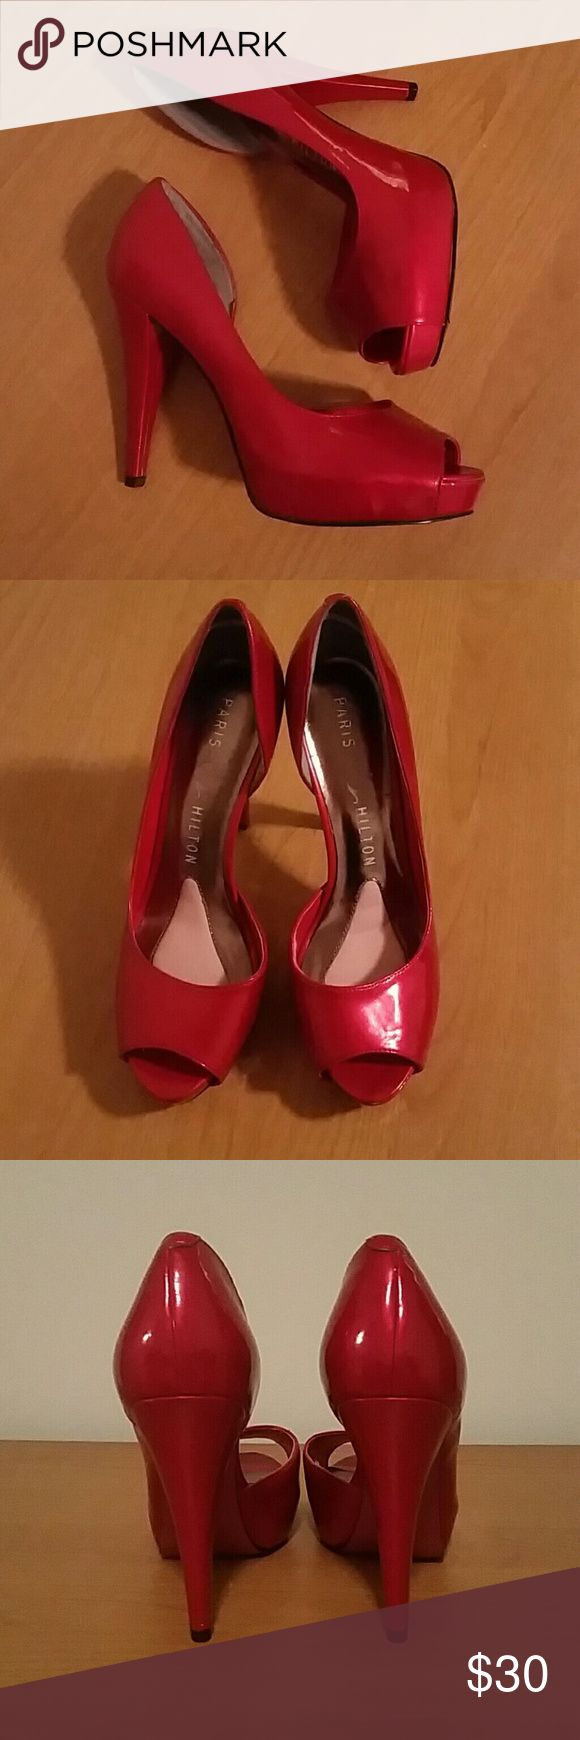 Red Paris Hilton pumps Paris Hilton ruby red patent high heels, 4 inch heel height. Open toe with a glossy finish. Look like new, besides scuff marks on the bottom of the shoe. Size 6 1/2. Paris Hilton Shoes Heels